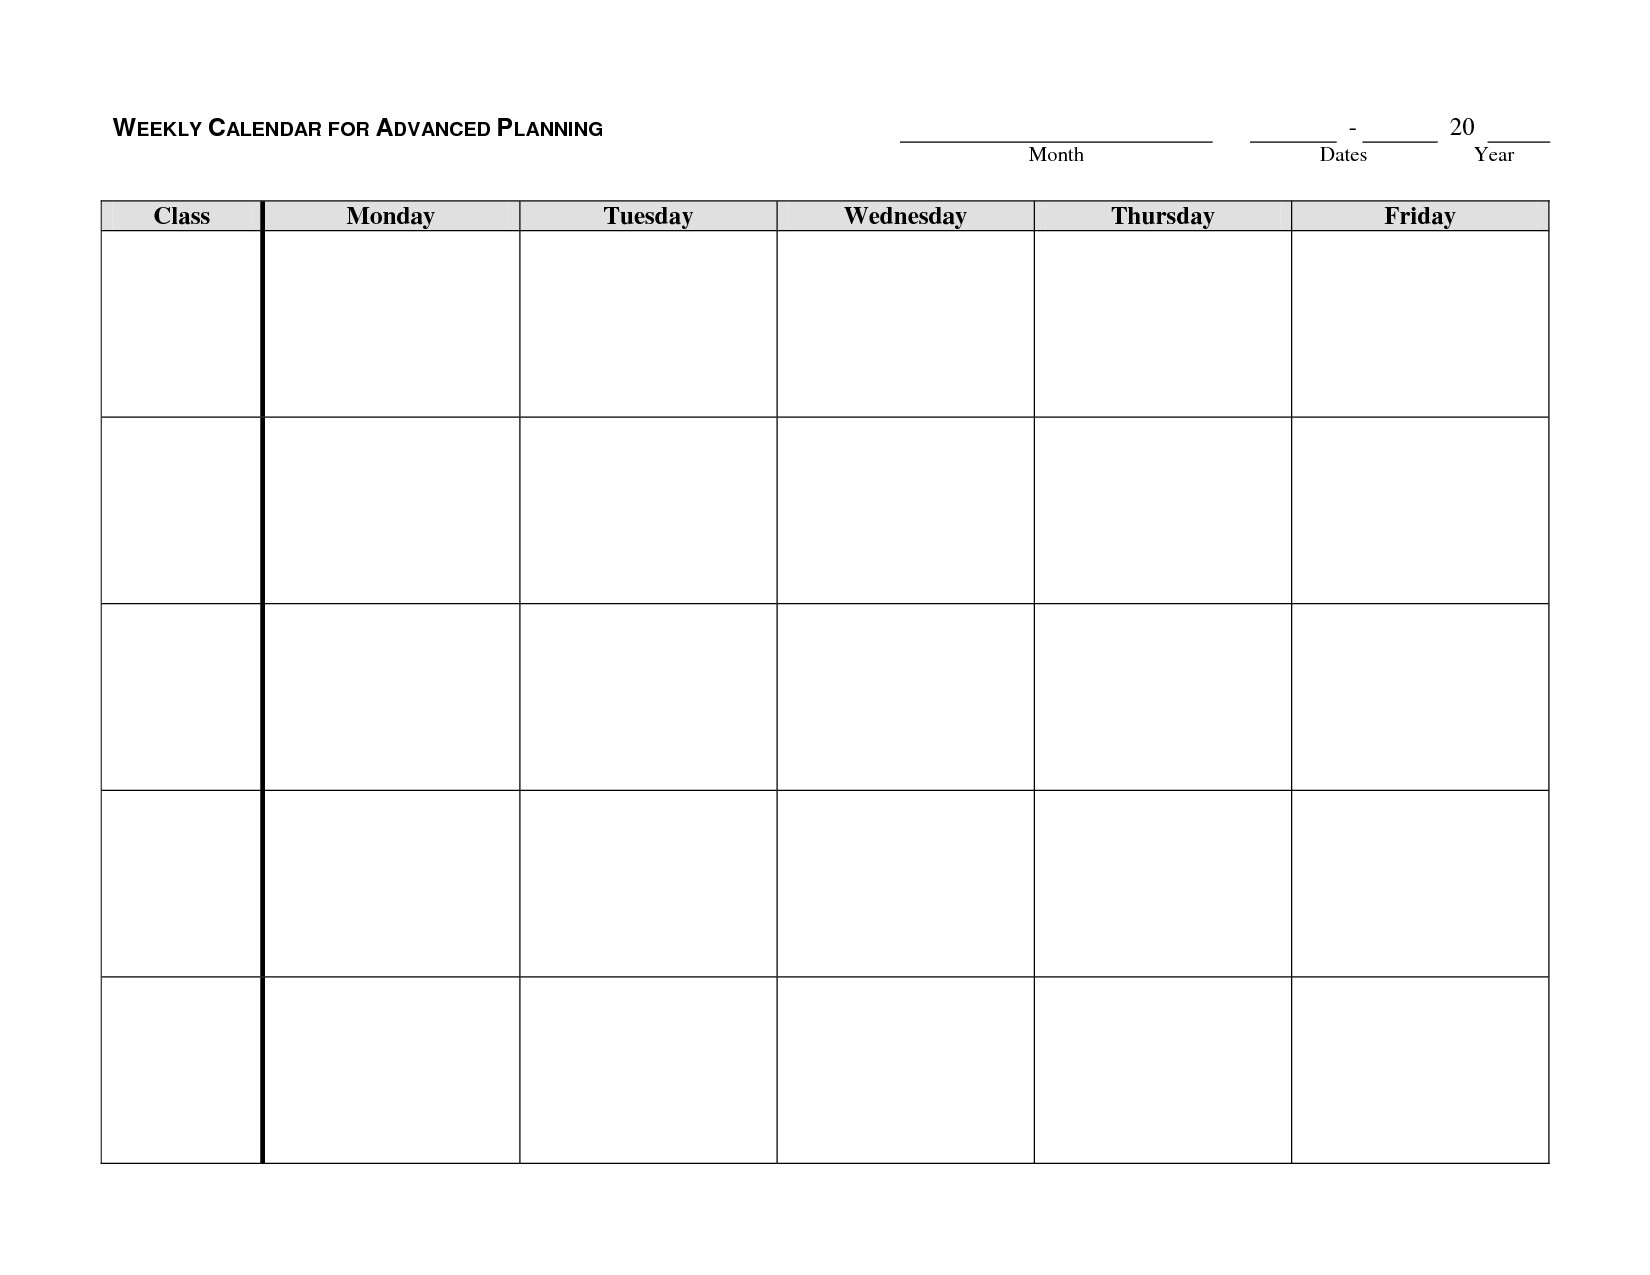 Printable Monday Through Friday Calendar | Hauck Mansion with regard to Week Template Monday Through Friday